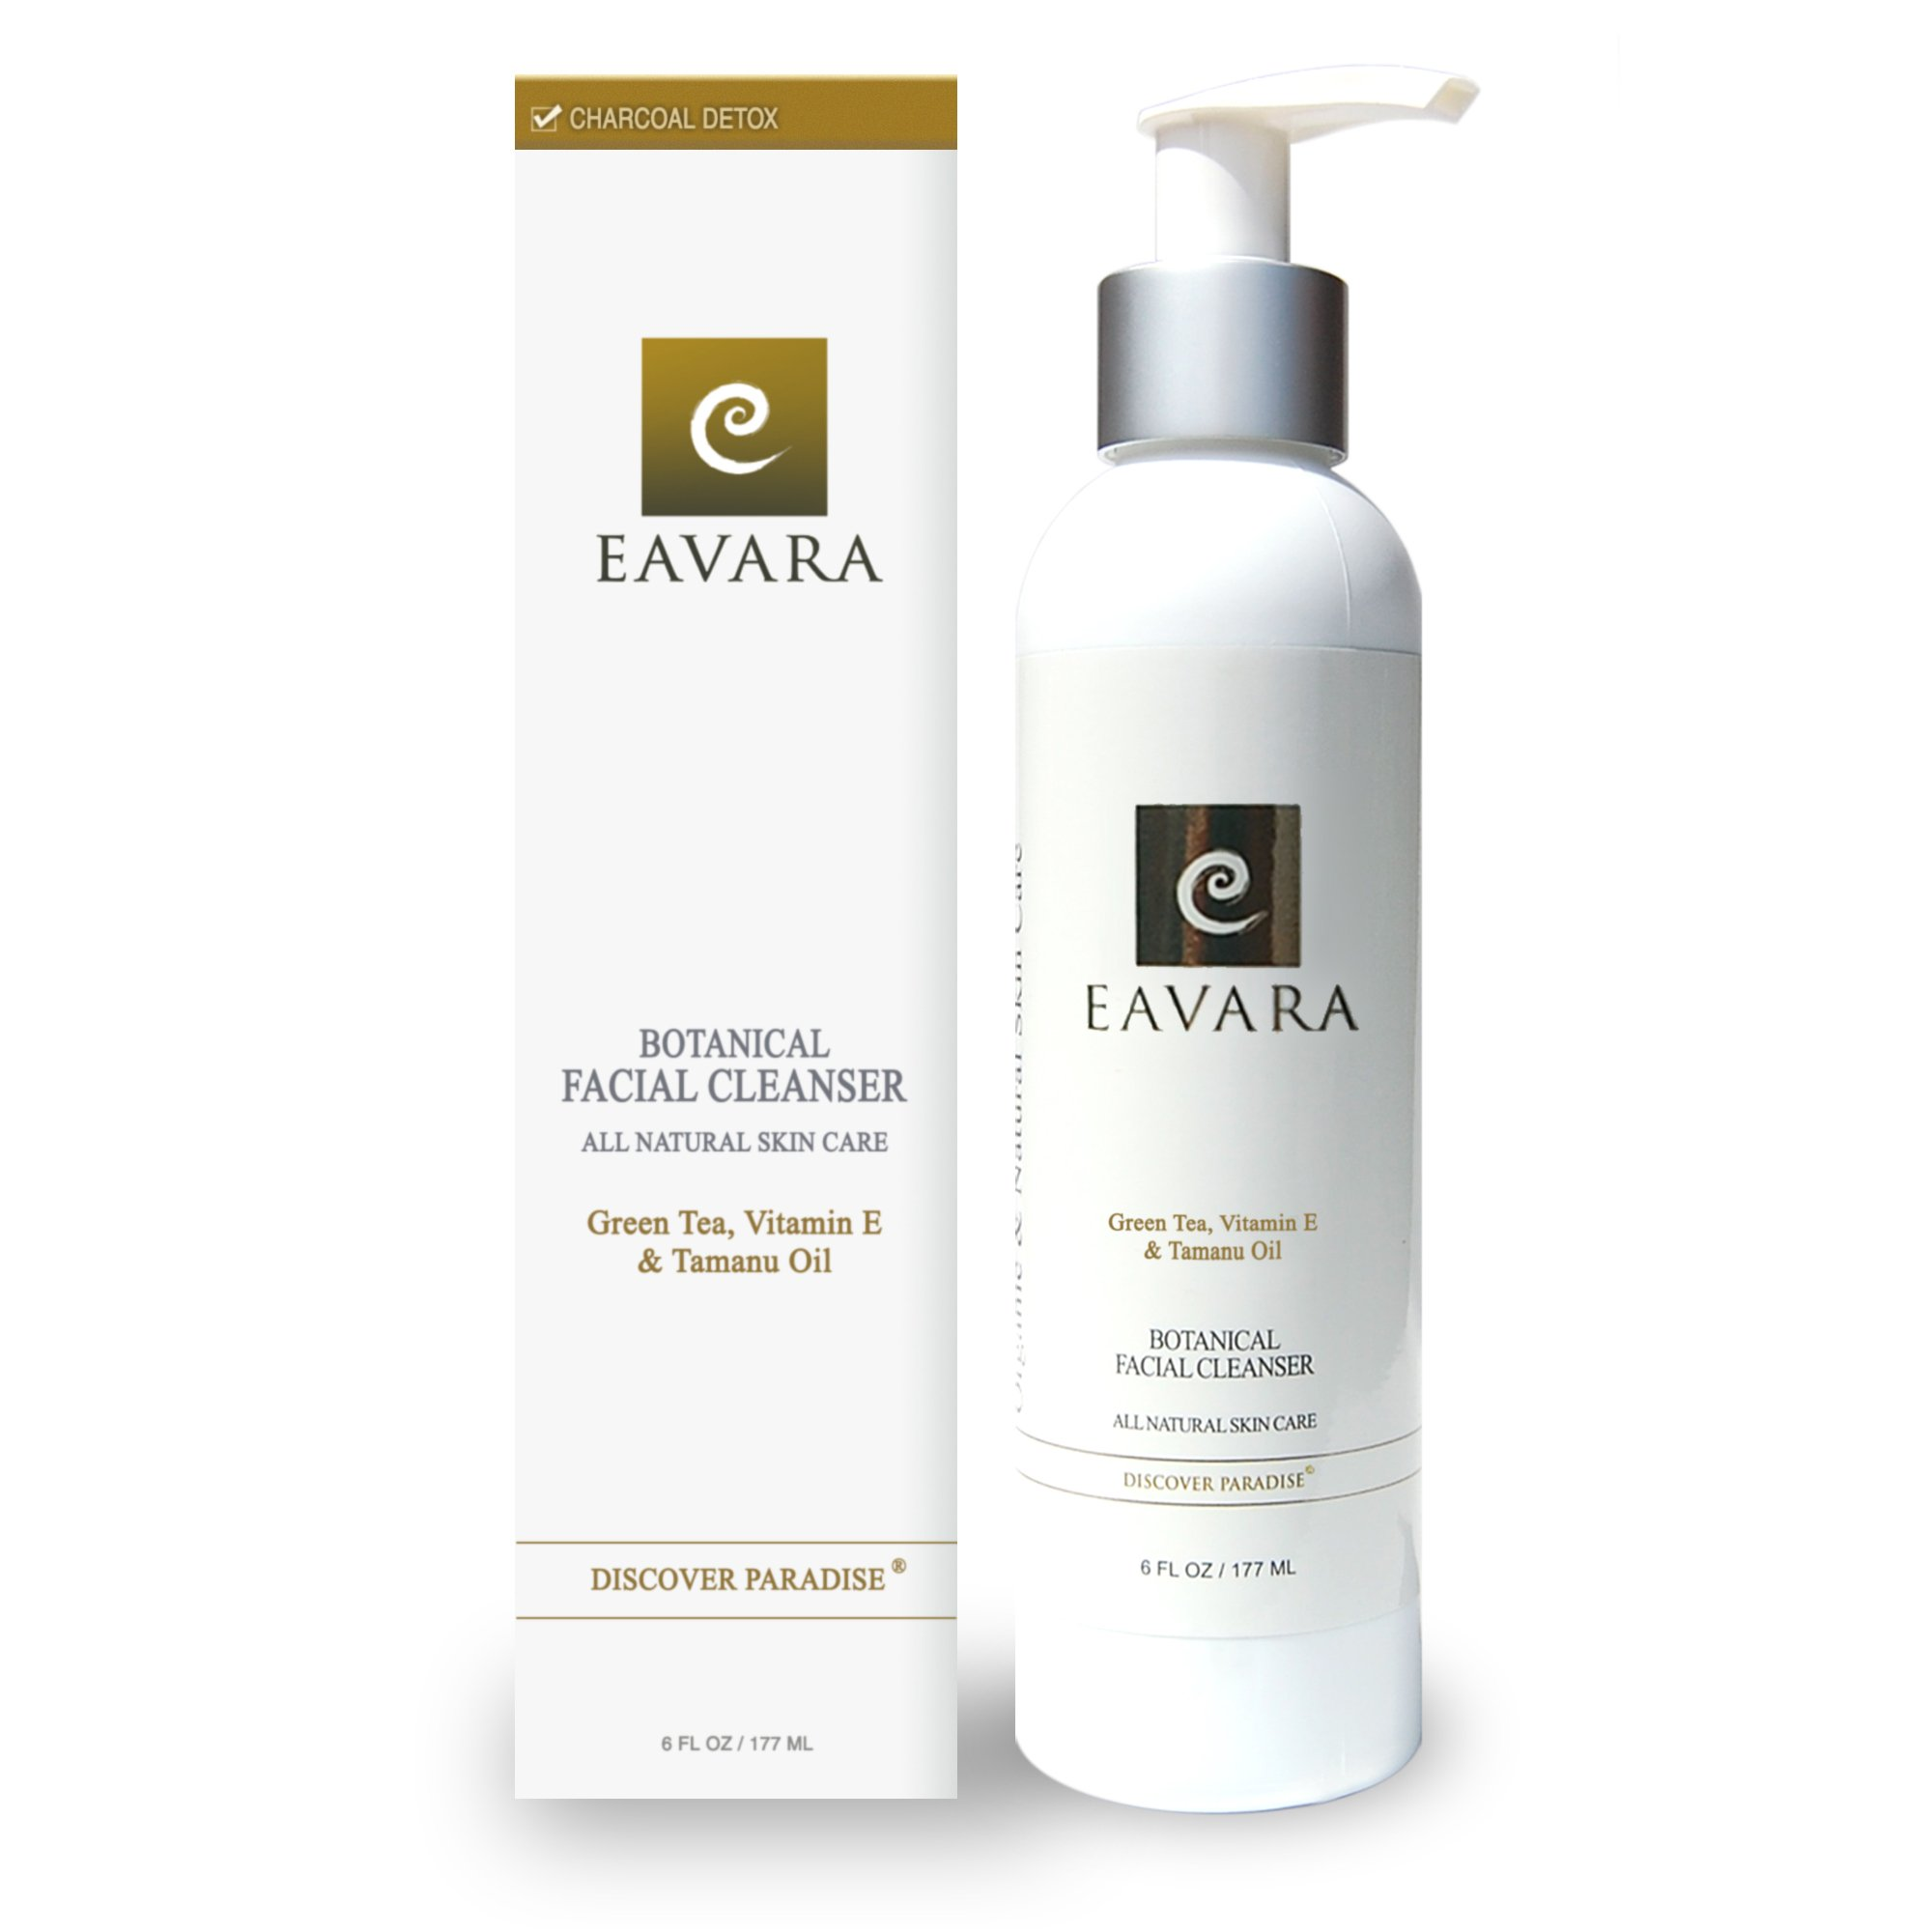 Award Winning Organic Anti Aging Daily Facial Cleanser | Eavara All Natural Exfoliating Face Cleanser Wash | For Sensitive Skin | Moisturizing | Hydrating | Organic Tamanu Oil | Coconut Oil